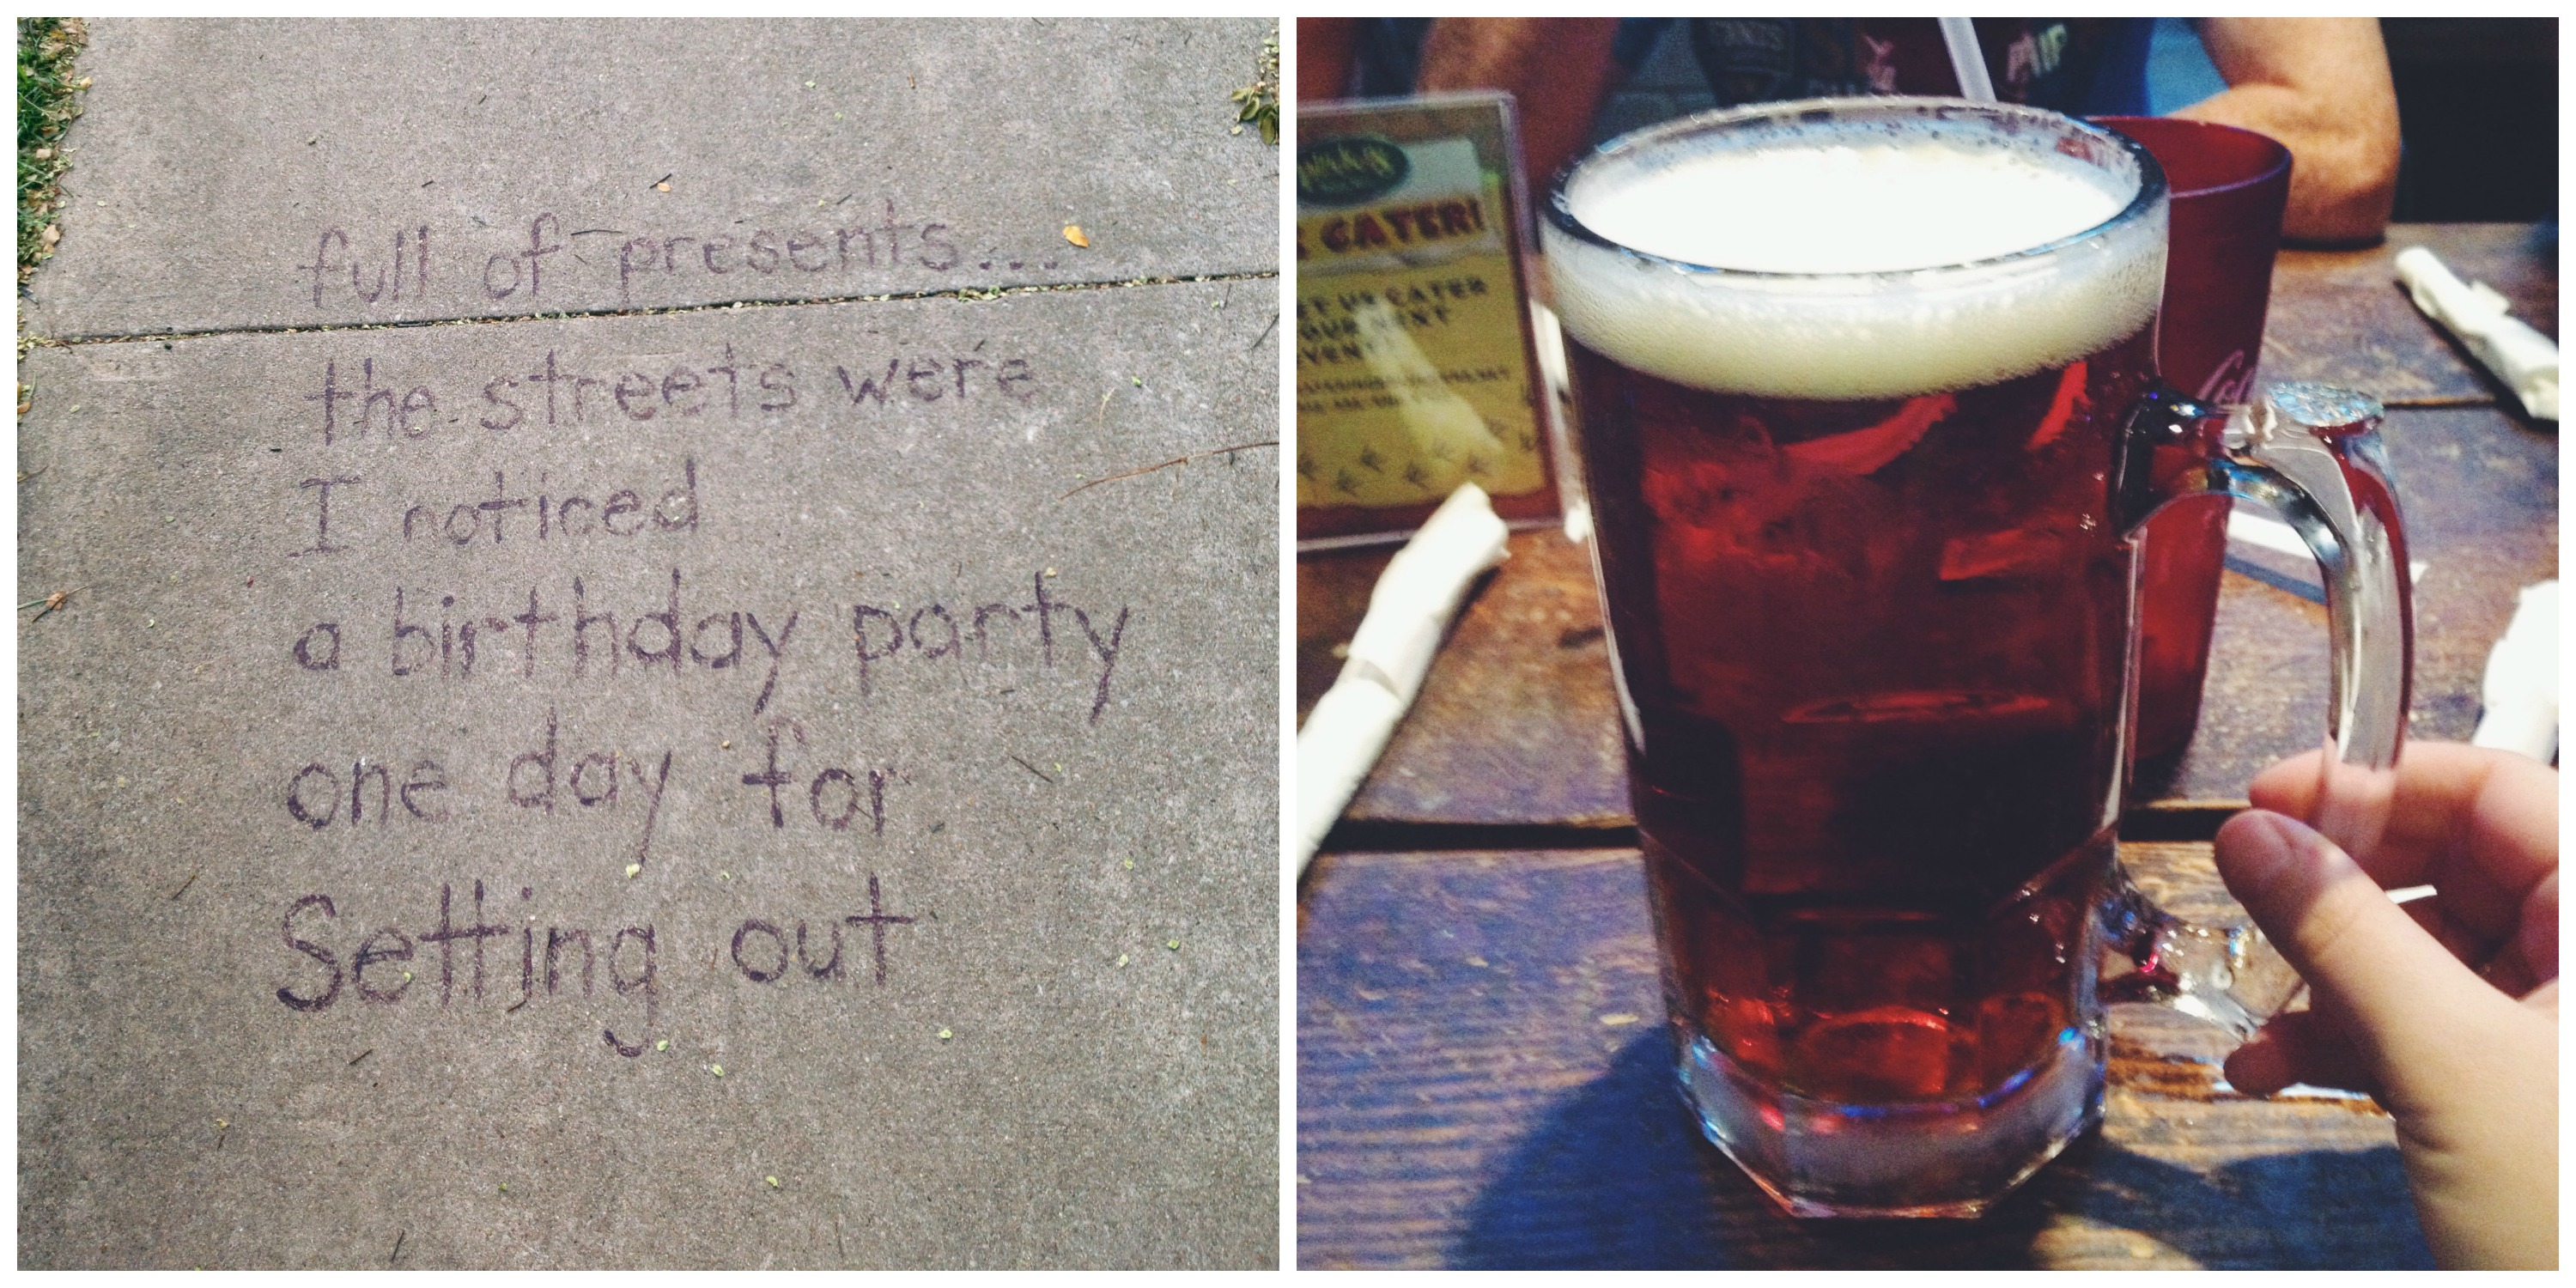 A Sidewalk Poem + A Beer